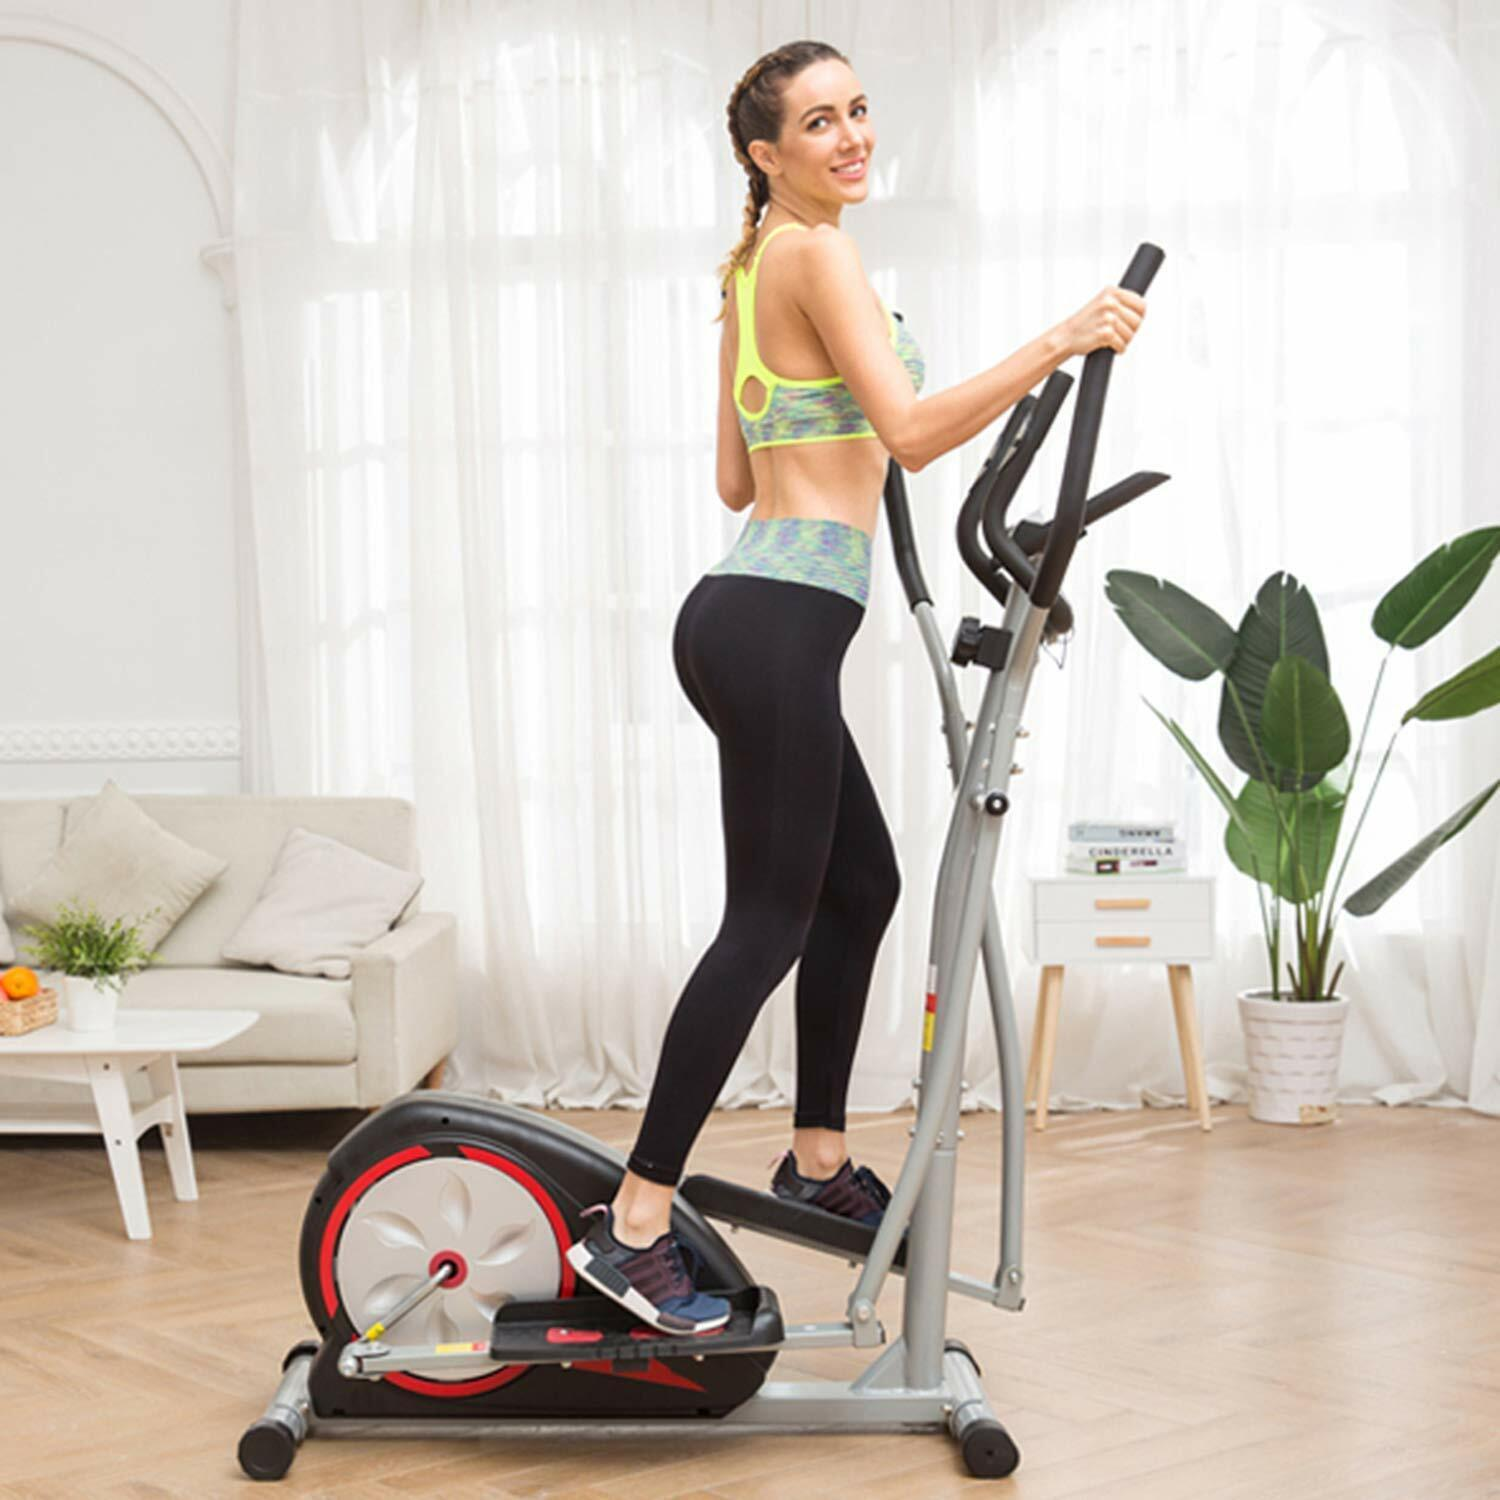 Magnetic Elliptical Exercise Training Machine with LCD Monit